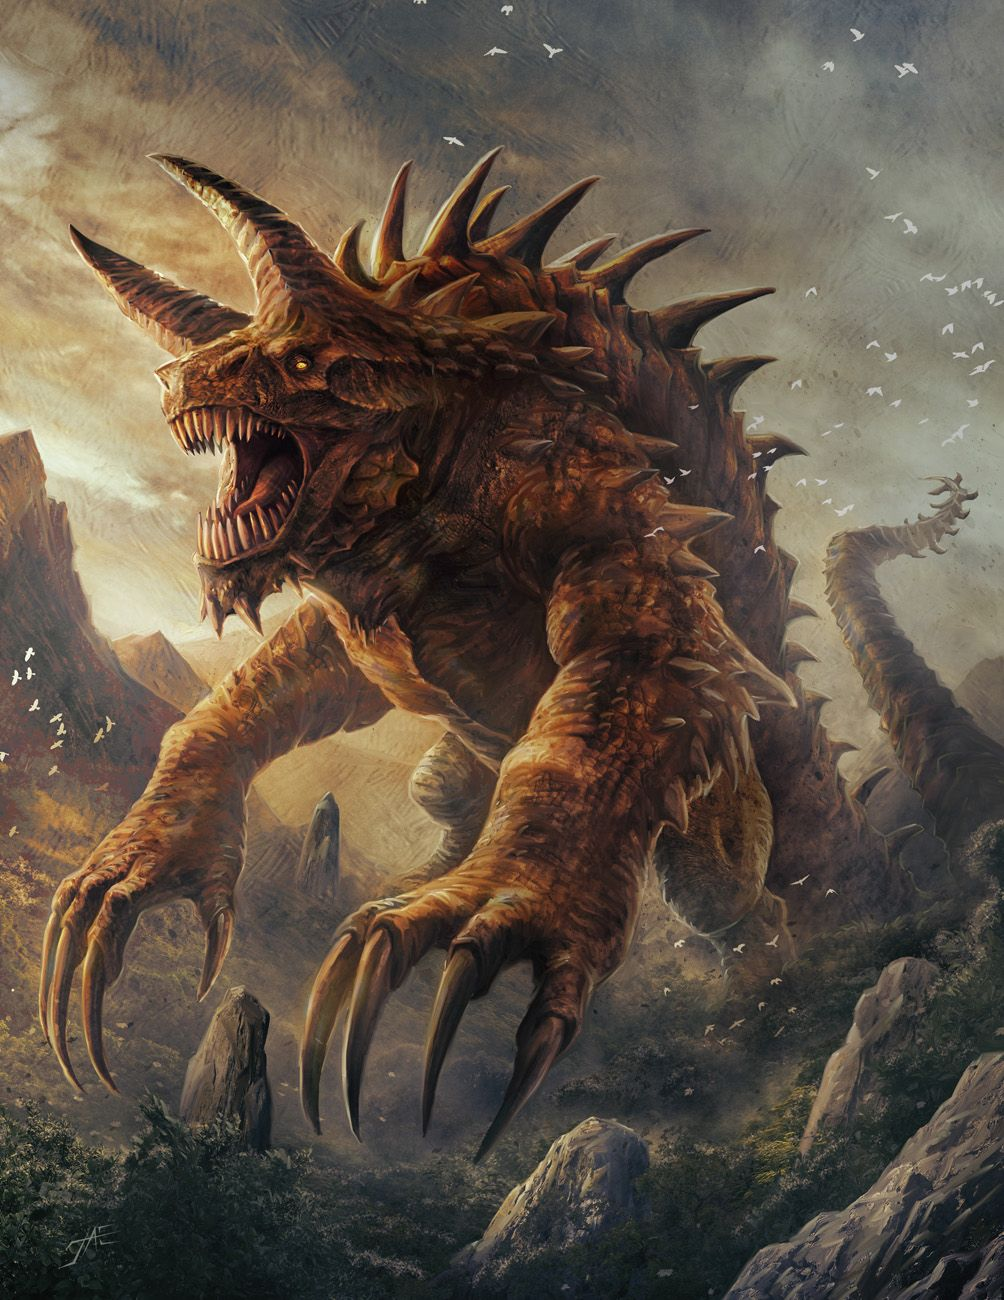 Tarrasque by JasonEngle | Fantasy beasts, Fantasy monster, Monster ...